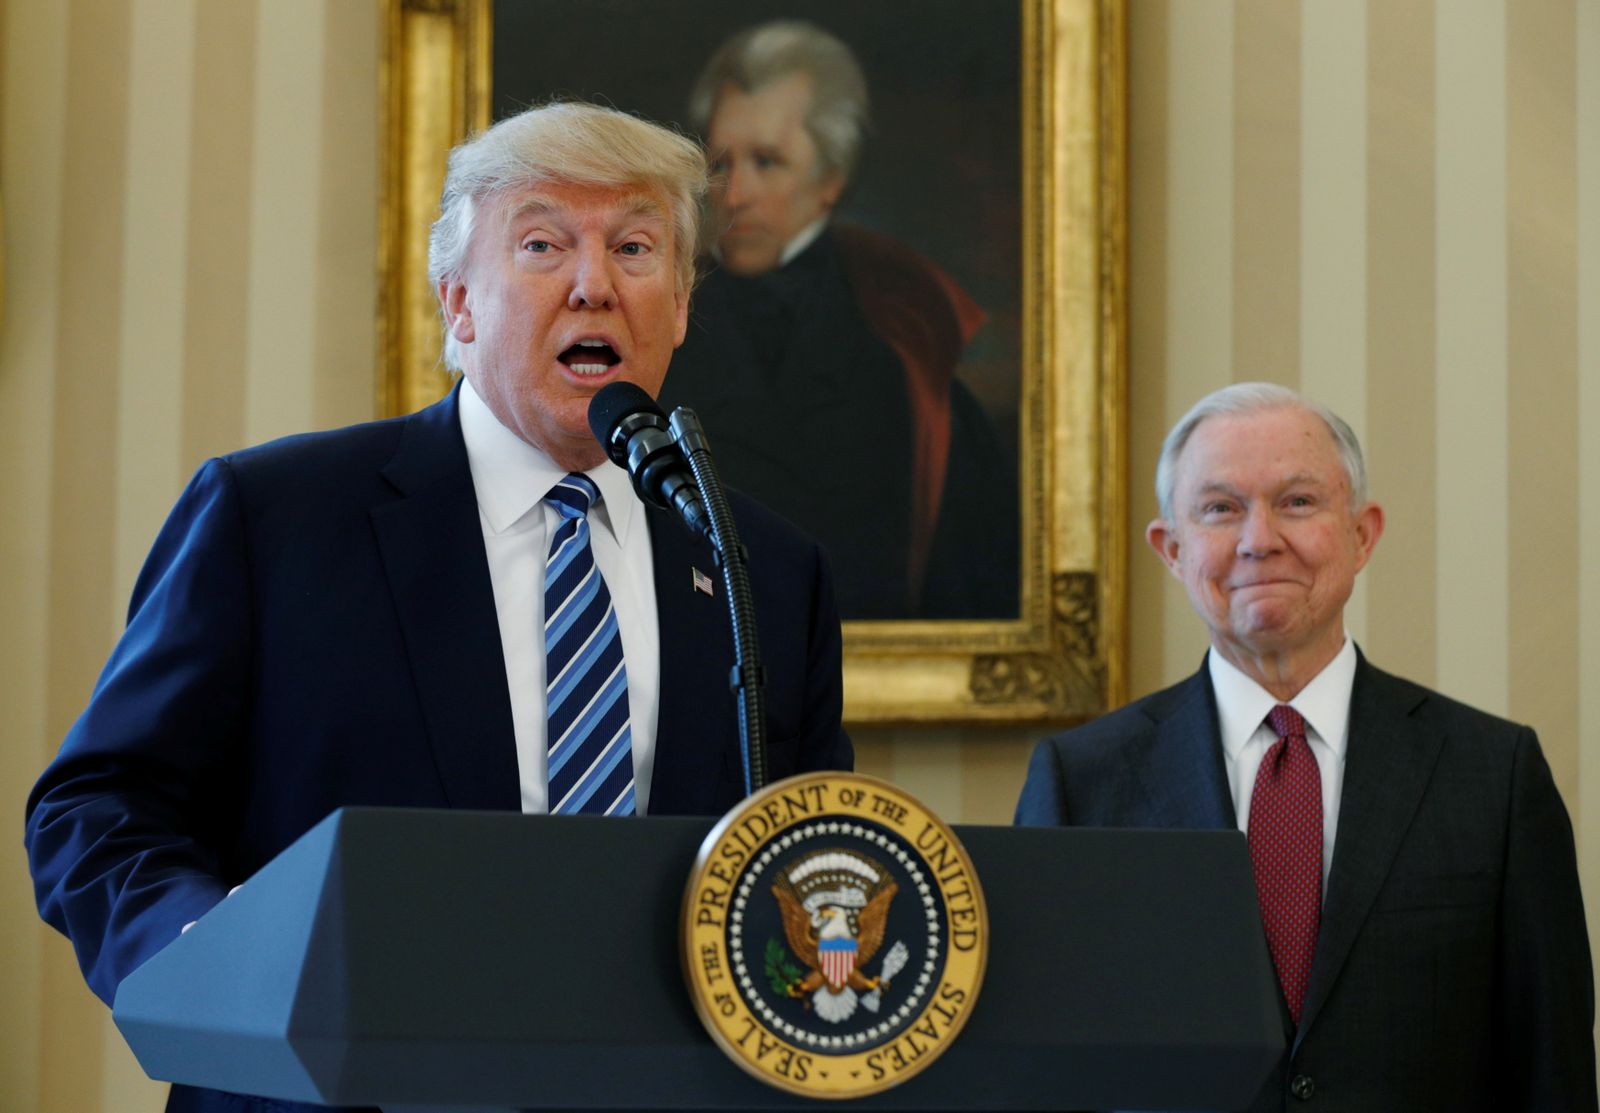 FILE PHOTO: U.S. President Trump speaks during swearing-in of Attorney General Sessions at the White House in Washington